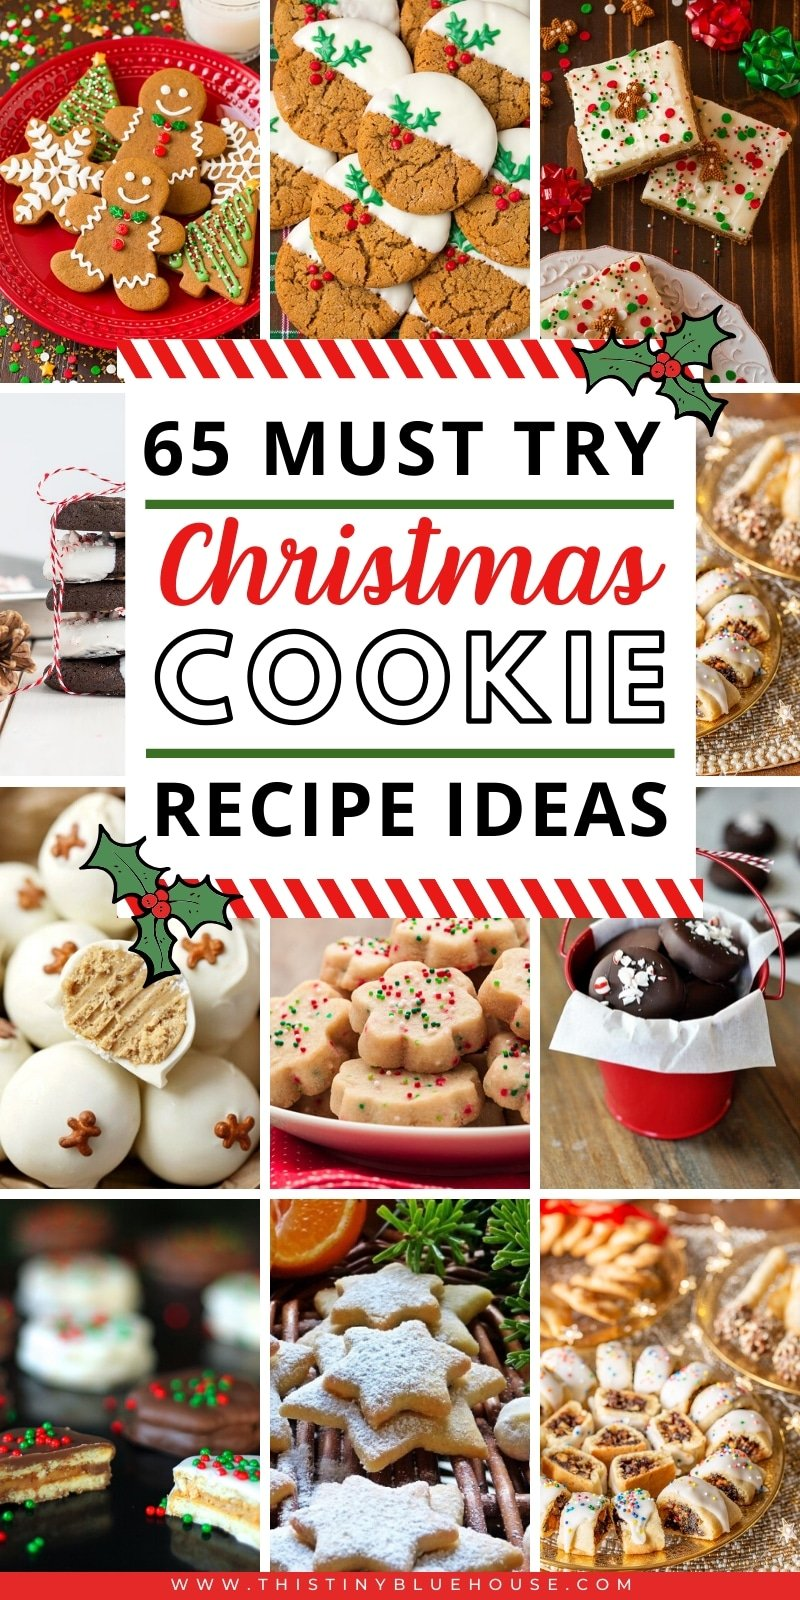 65 best delicious holiday cookie recipes - Delicious, easy and wonderful cookie recipes to serve during the holiday season. GIft them or eat them these delicious treats will be loved by all. #christmas #christmascookies #cookies #holidaycookies #cookierecipes